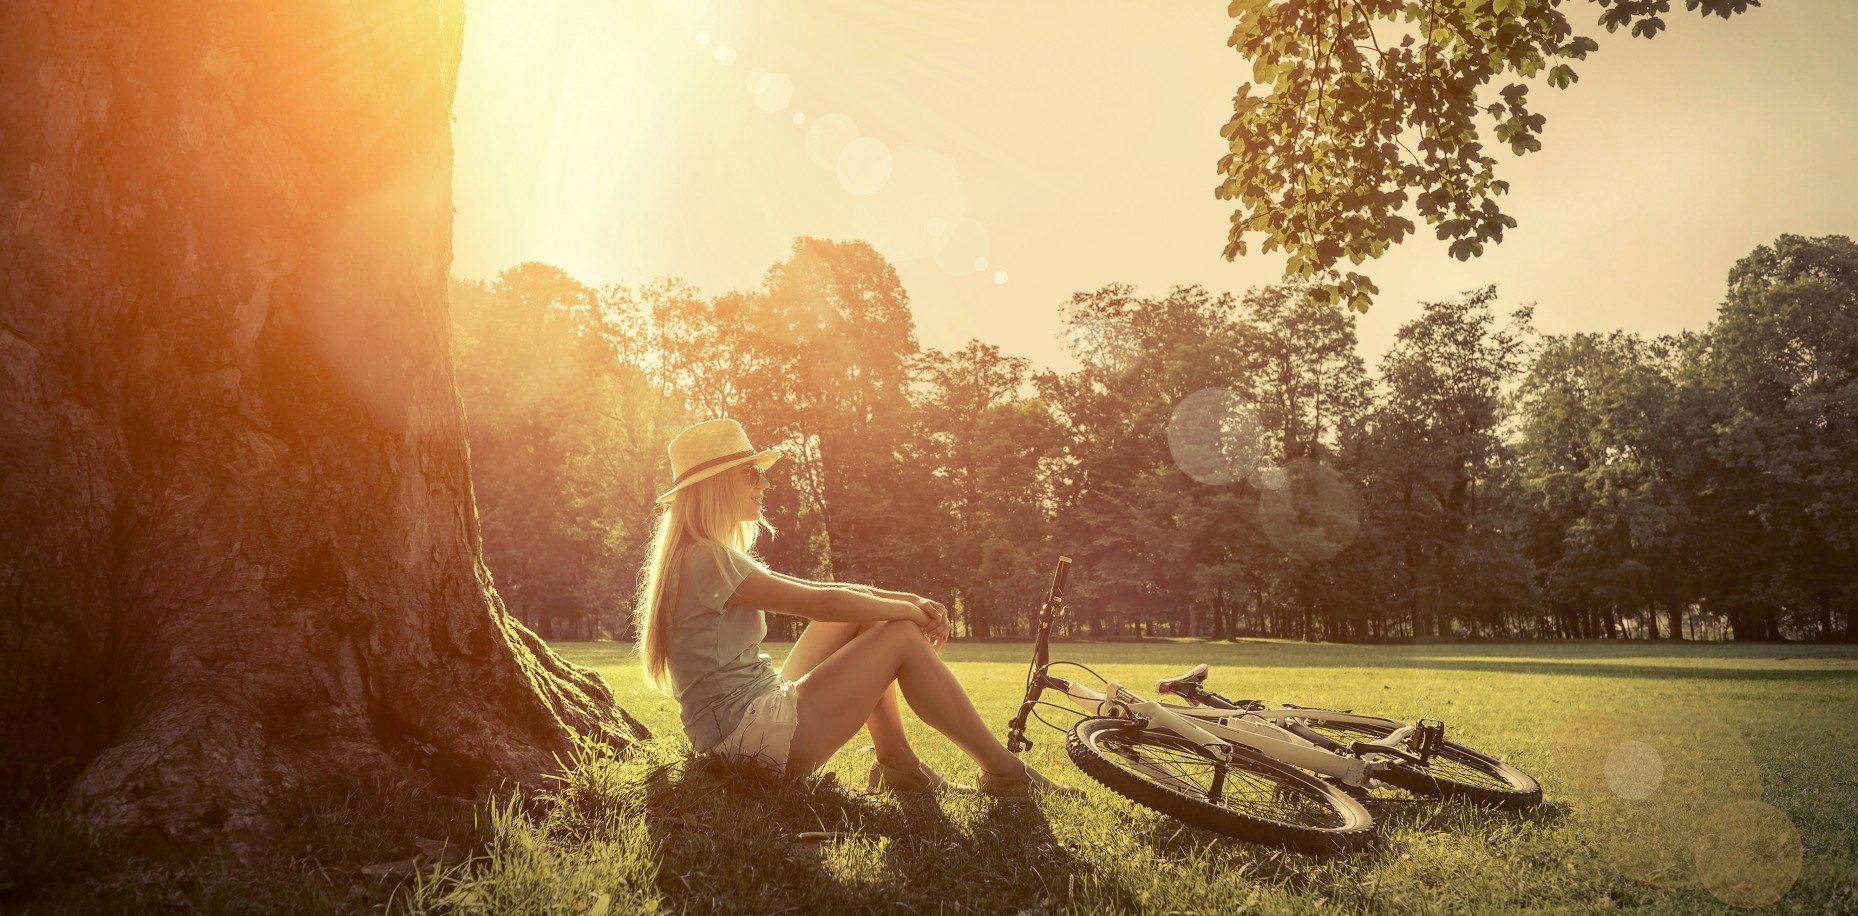 A green and pleasant land, green spaces are important for our mental health